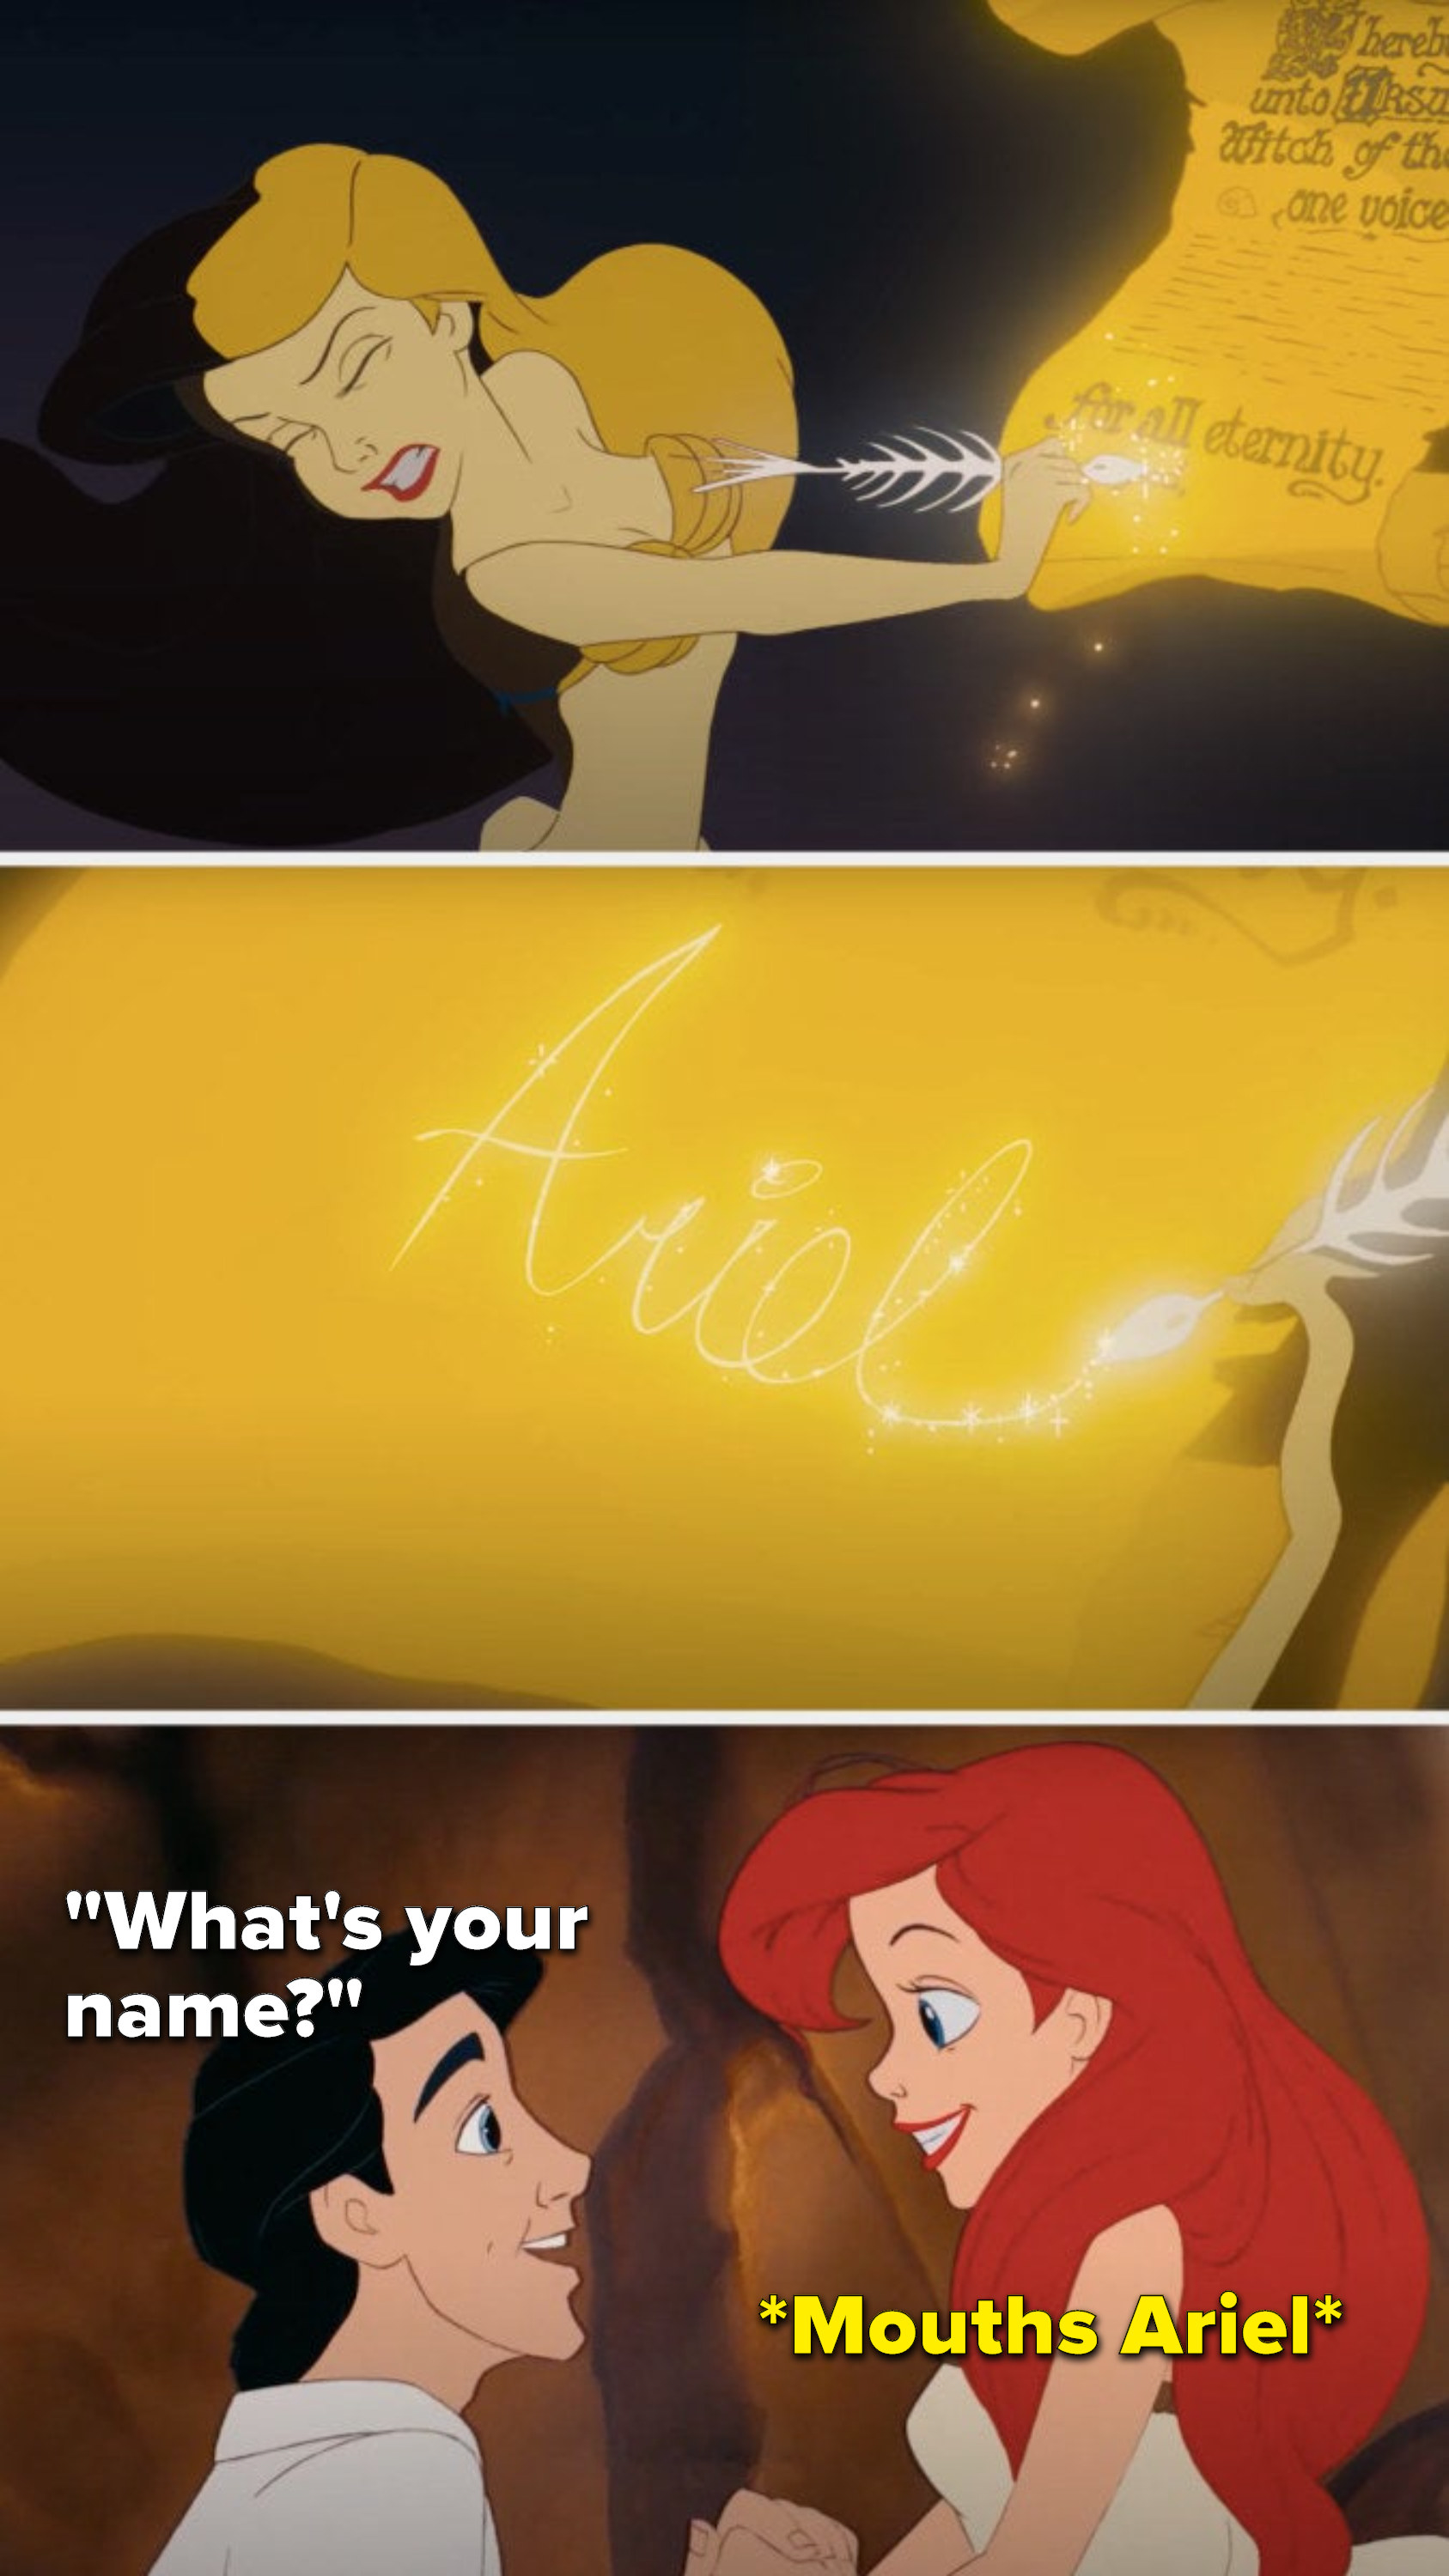 Ariel signs a contract, but when Eric asks her what her name is, she mouths Ariel